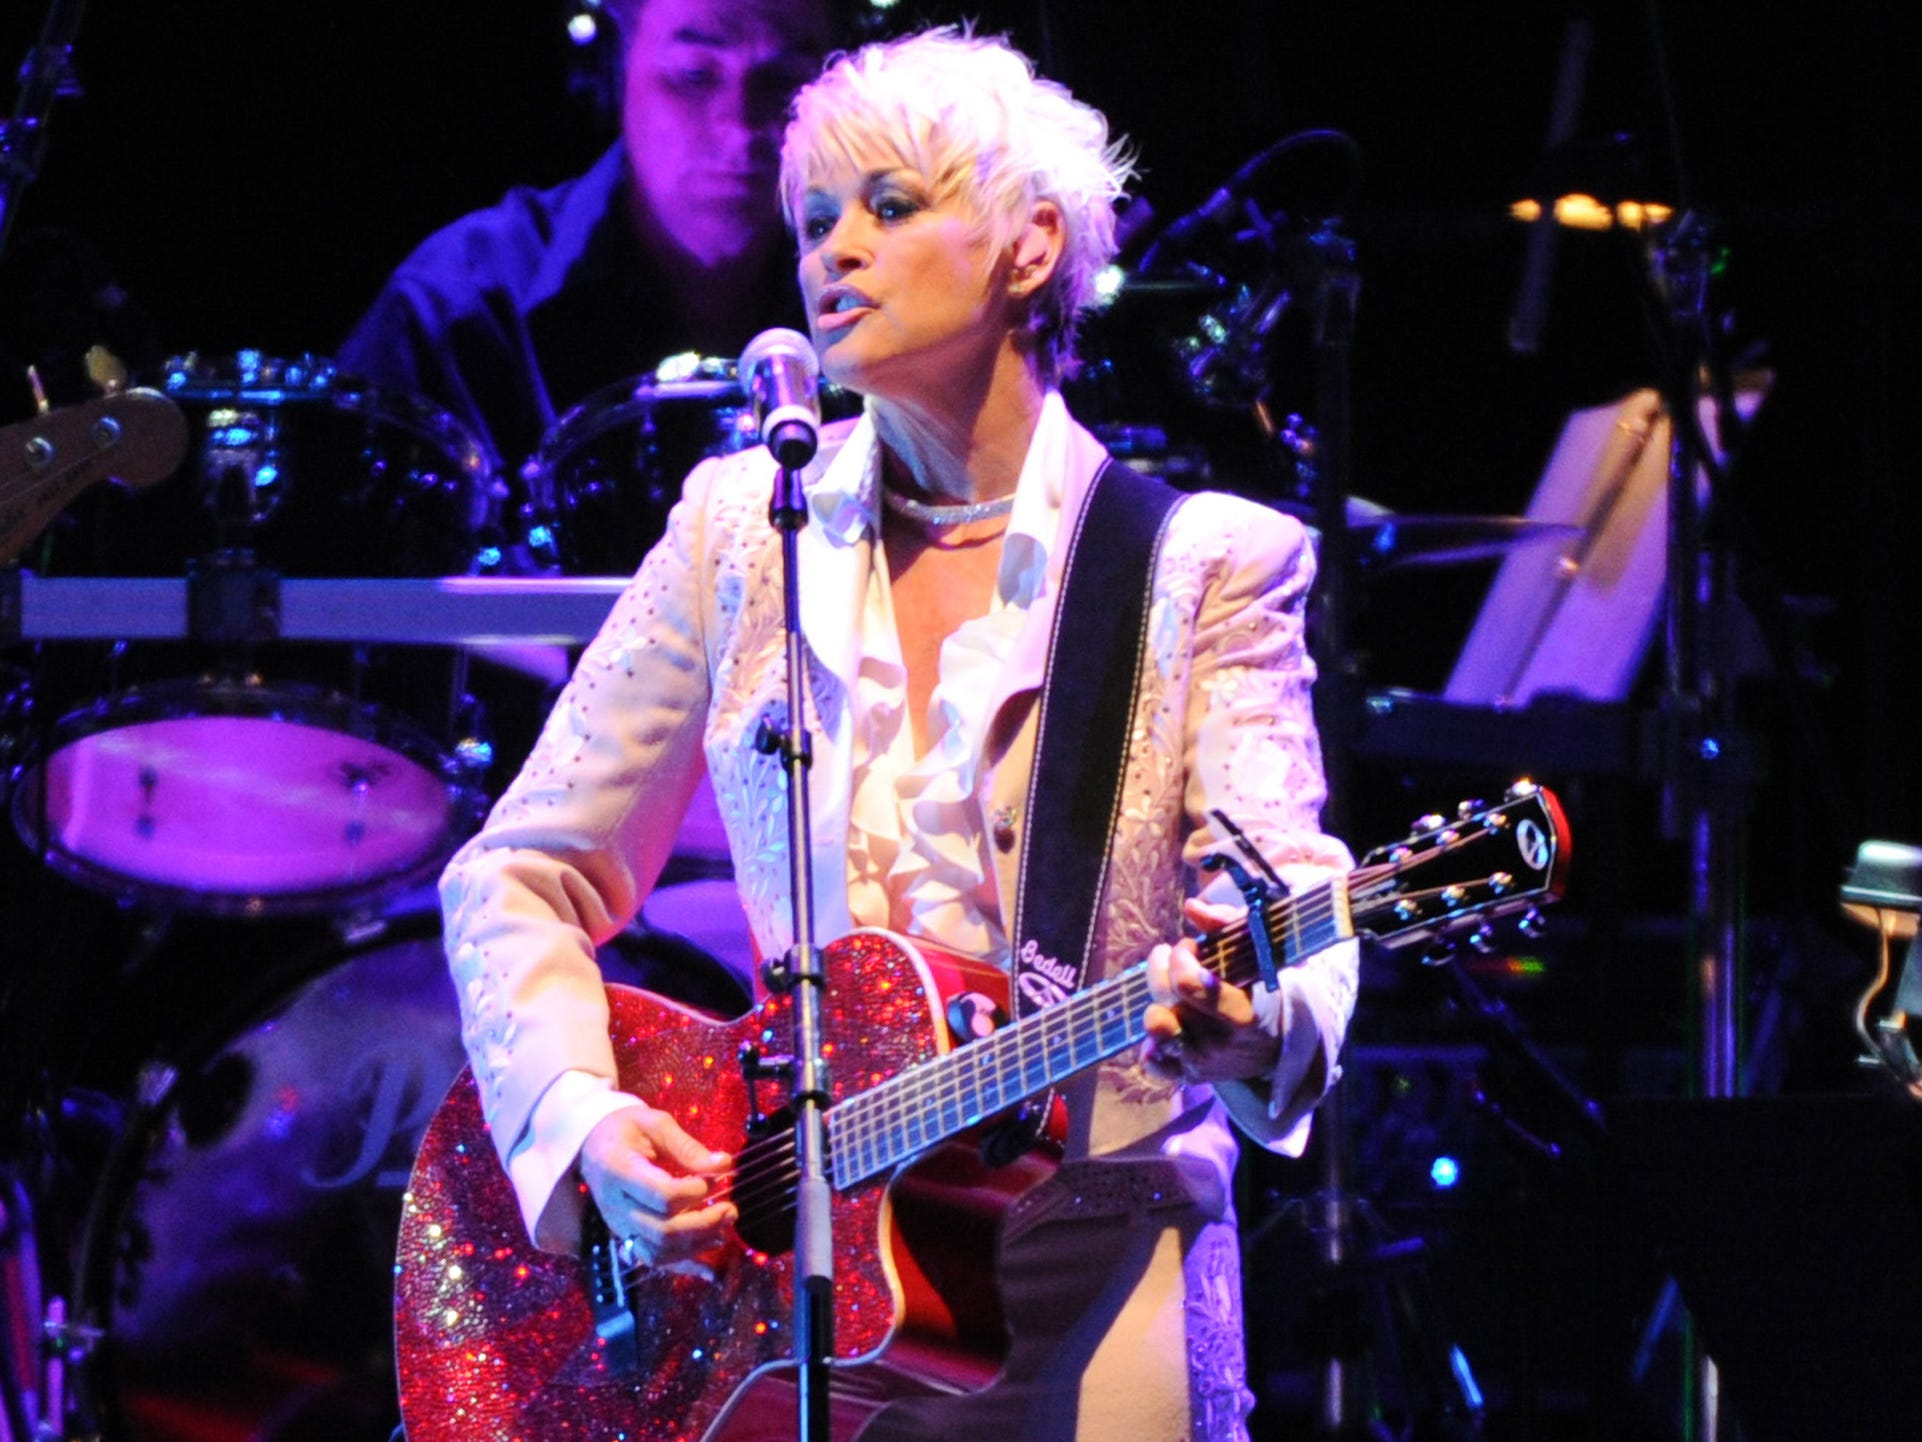 Lorrie Morgan is scheduled to play the Budweiser Forever Country Stage at CMA Fest 2019.